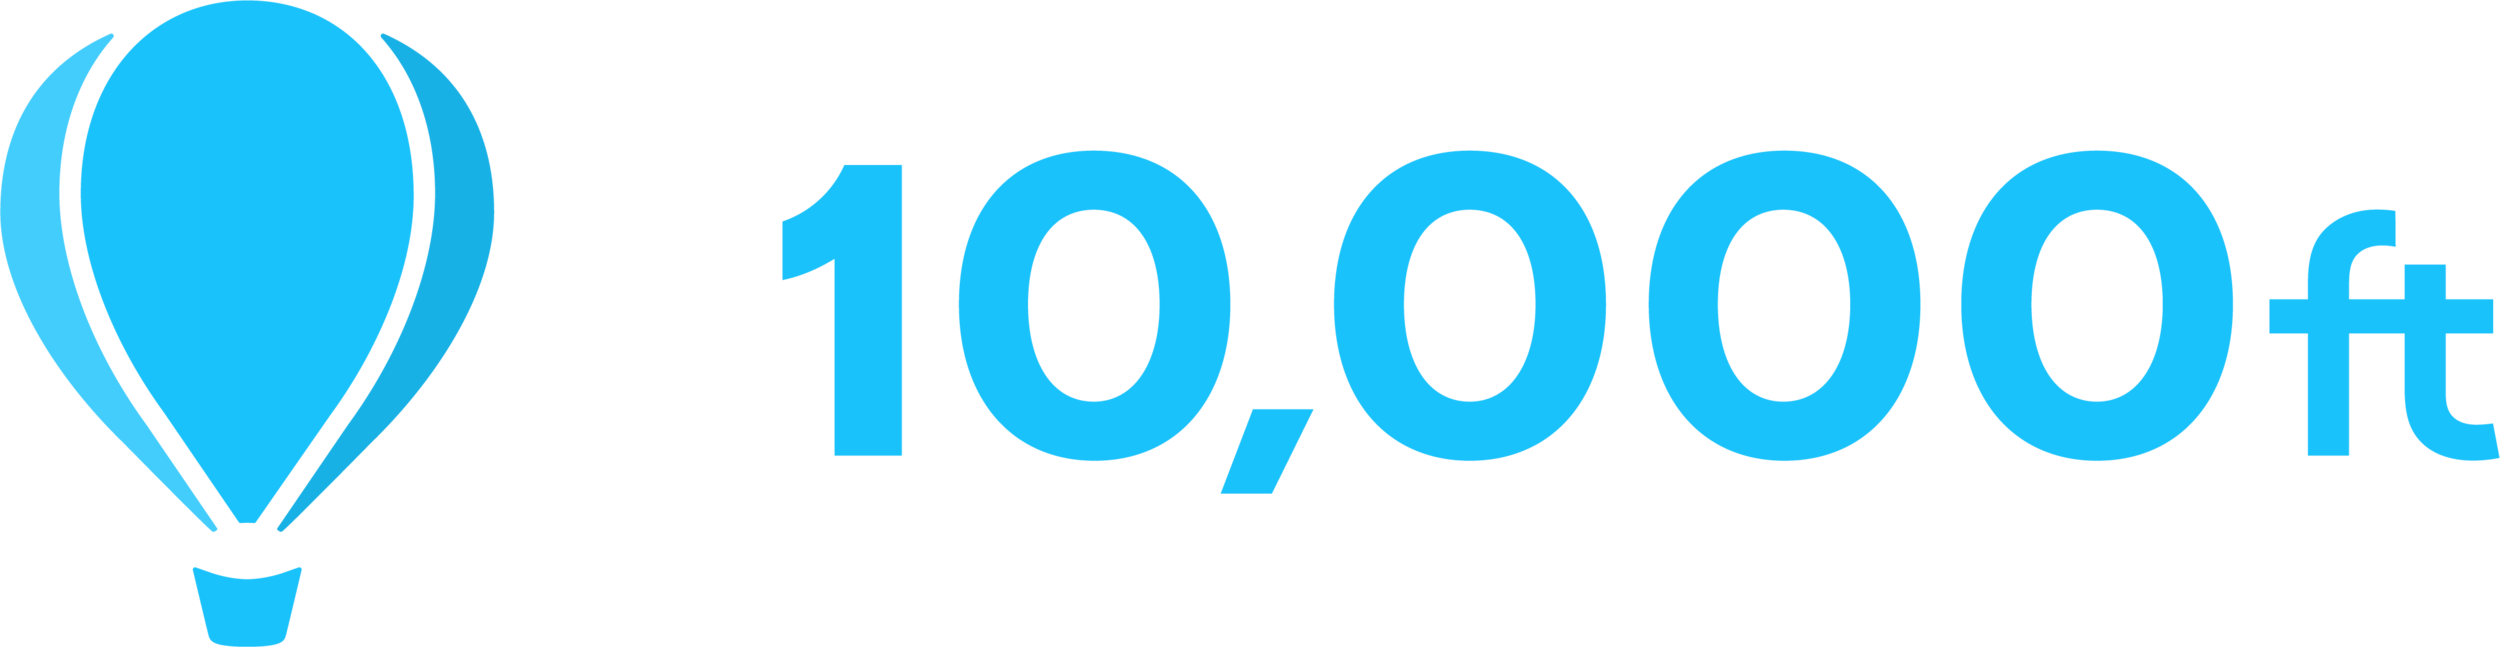 10000ft-blue-logo.png